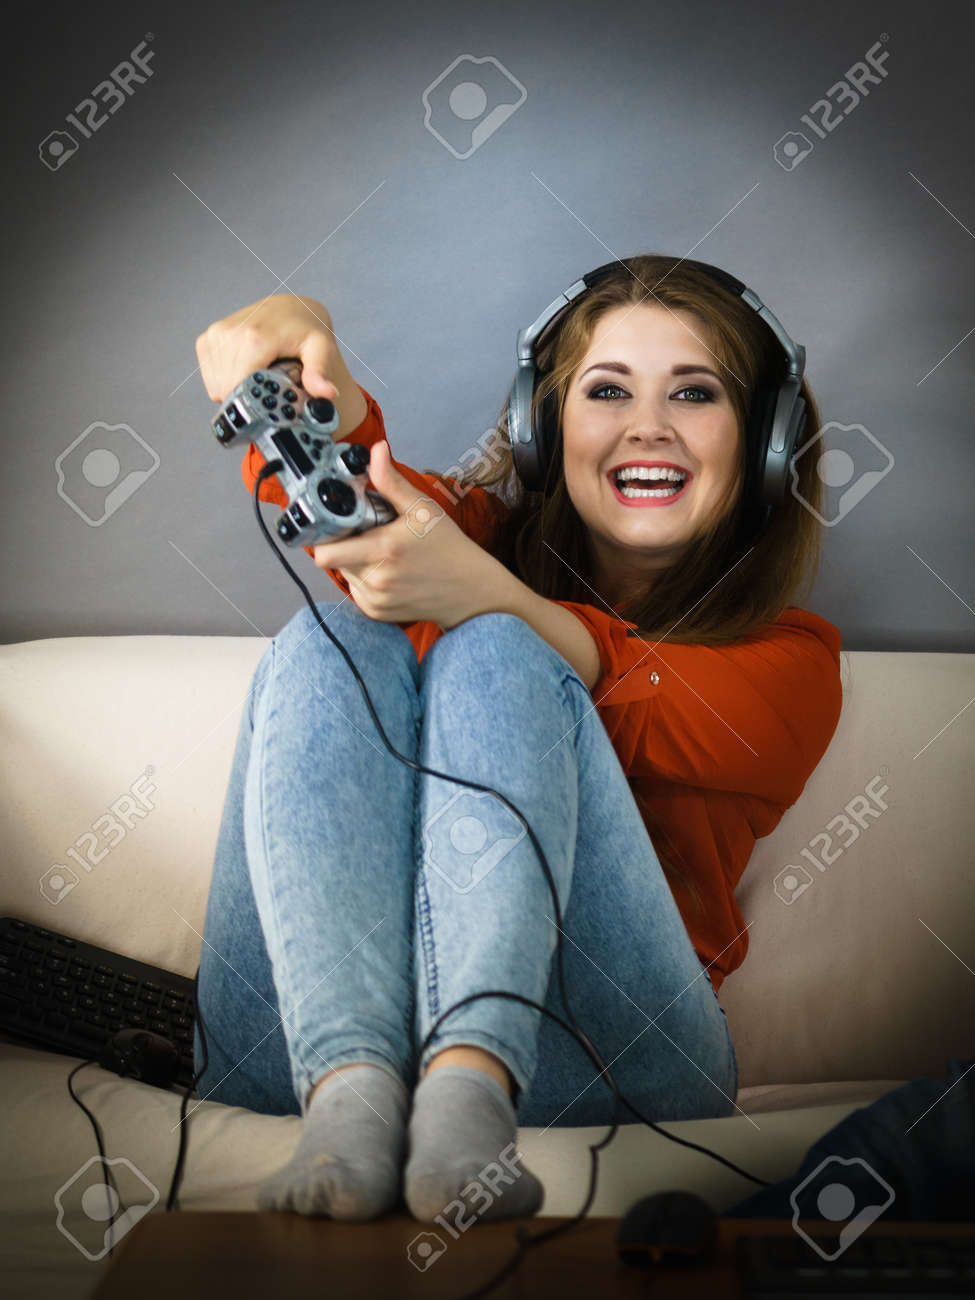 Nerd Geek Young Adult Women Playing On The Video Console Holding Game Pad Sitting On Sofa